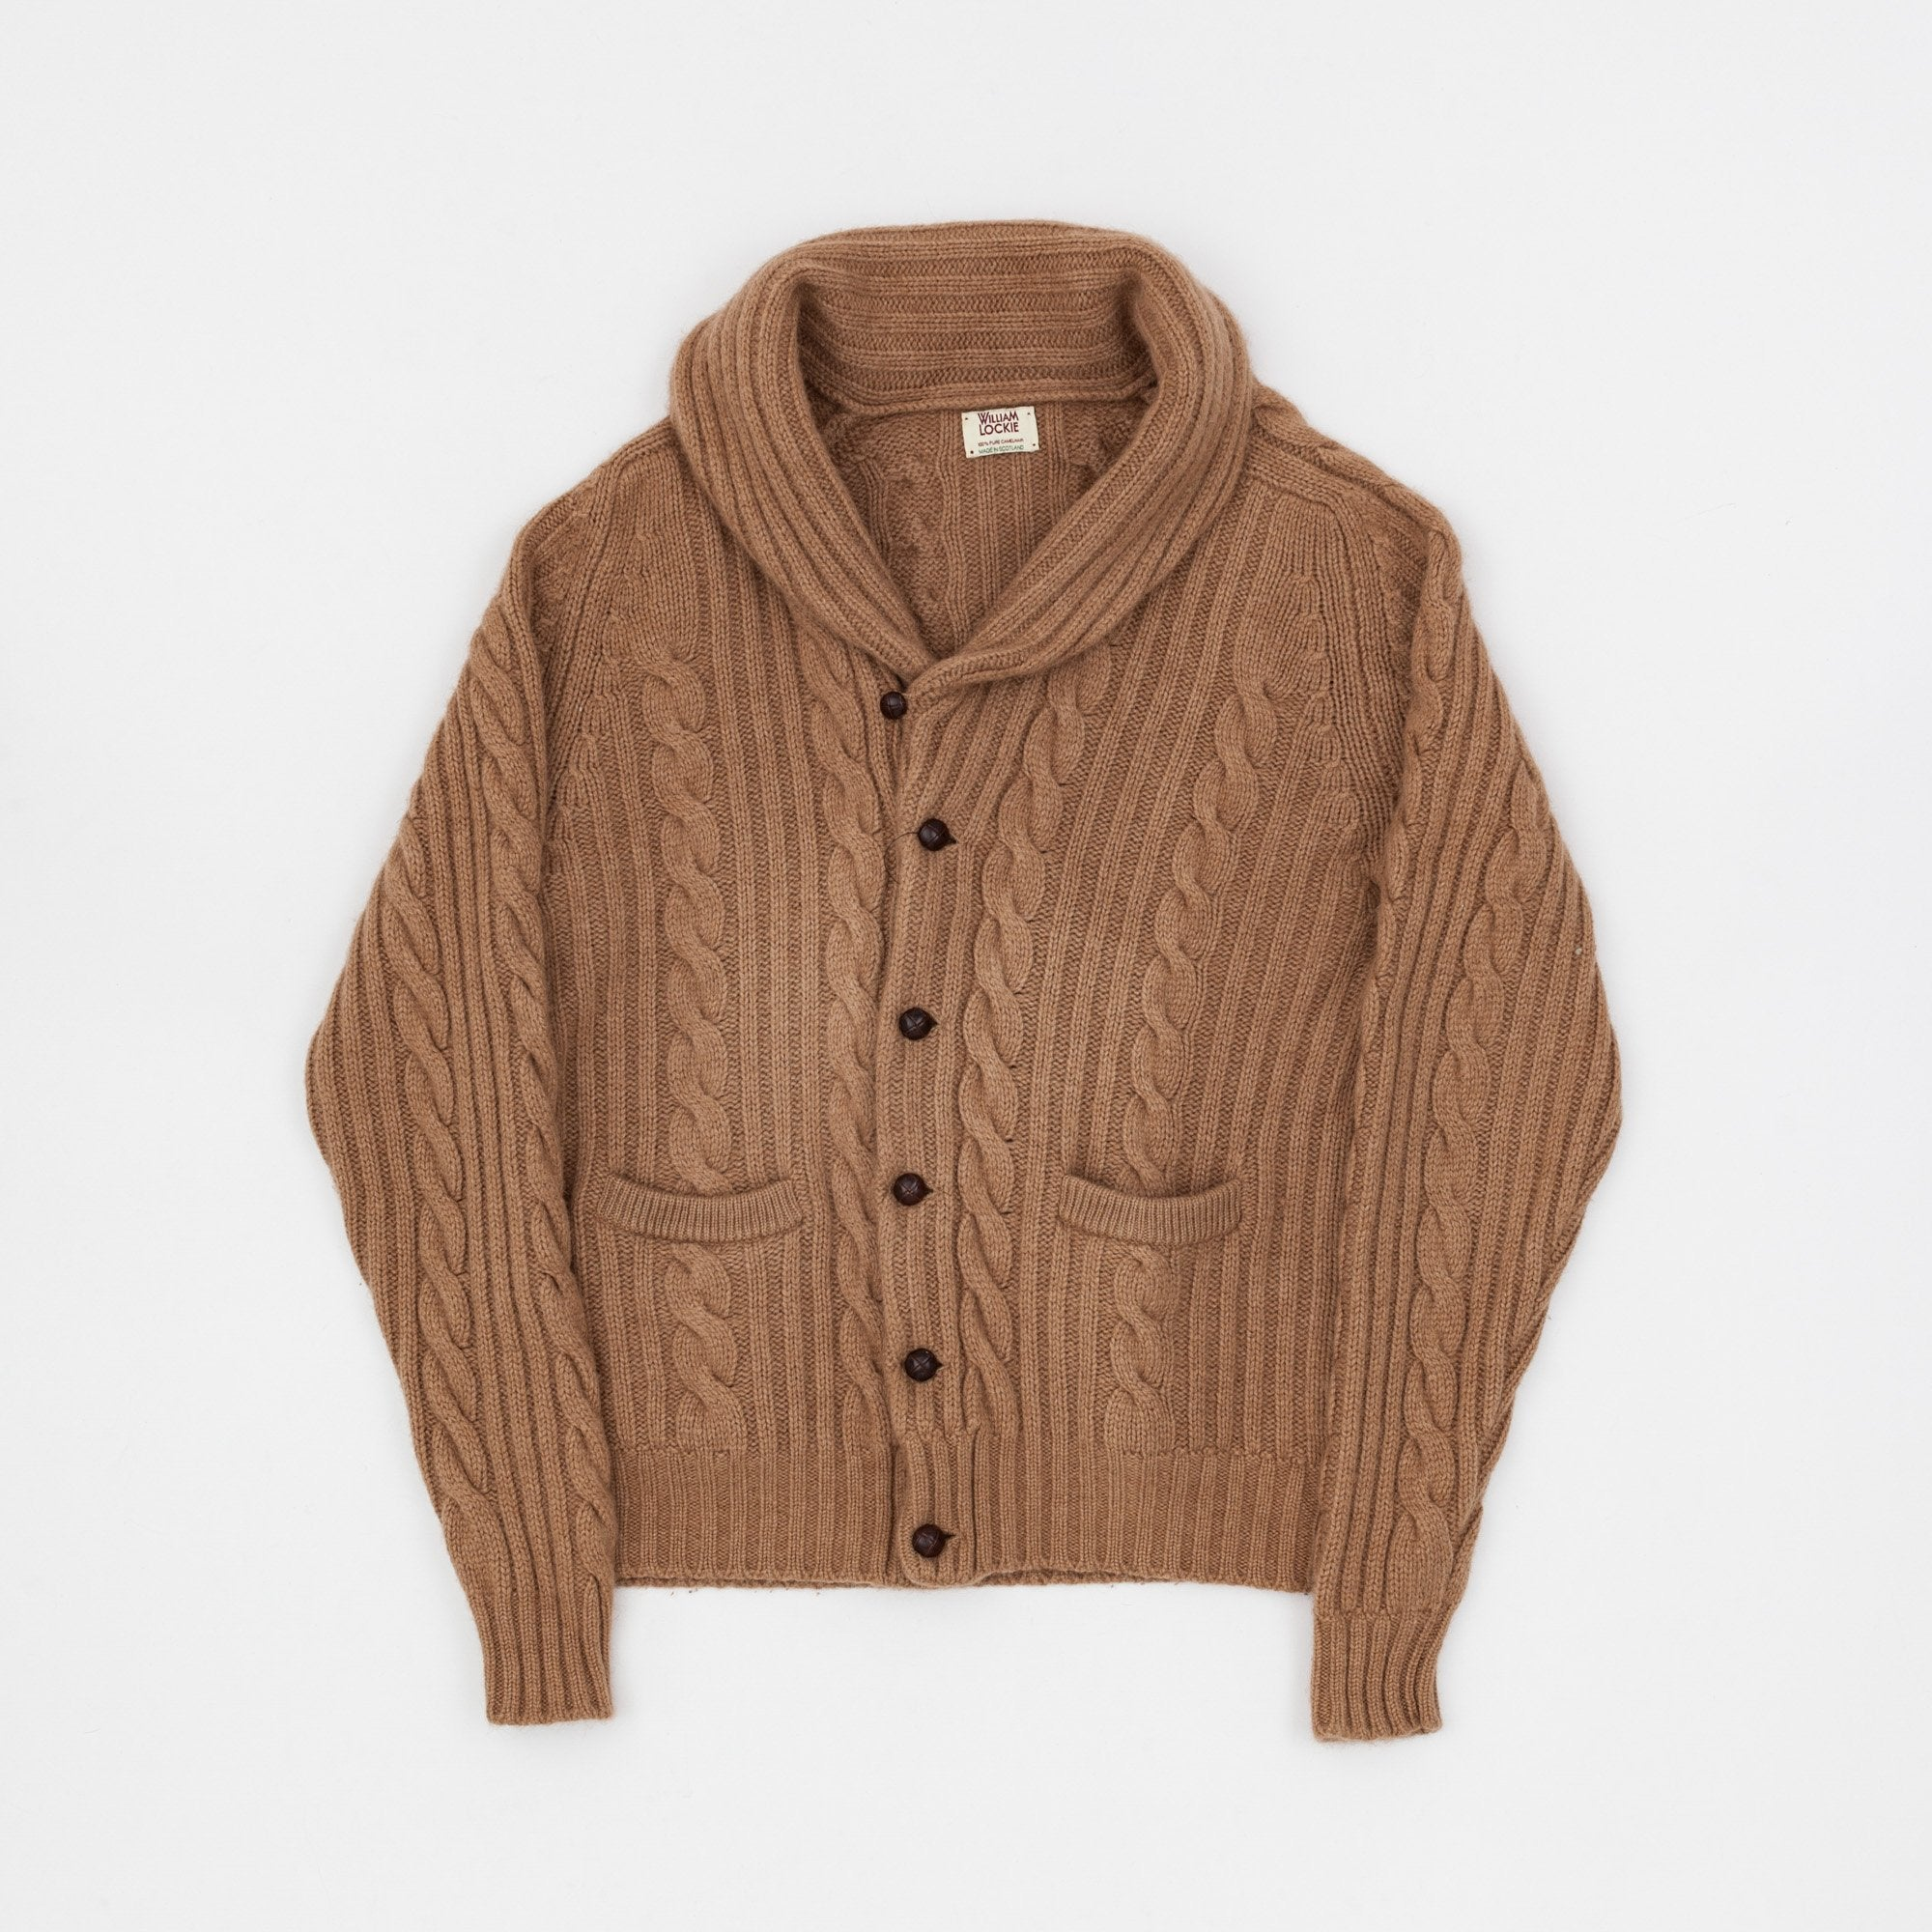 William Lockie Heavy Cable Knit Cardigan